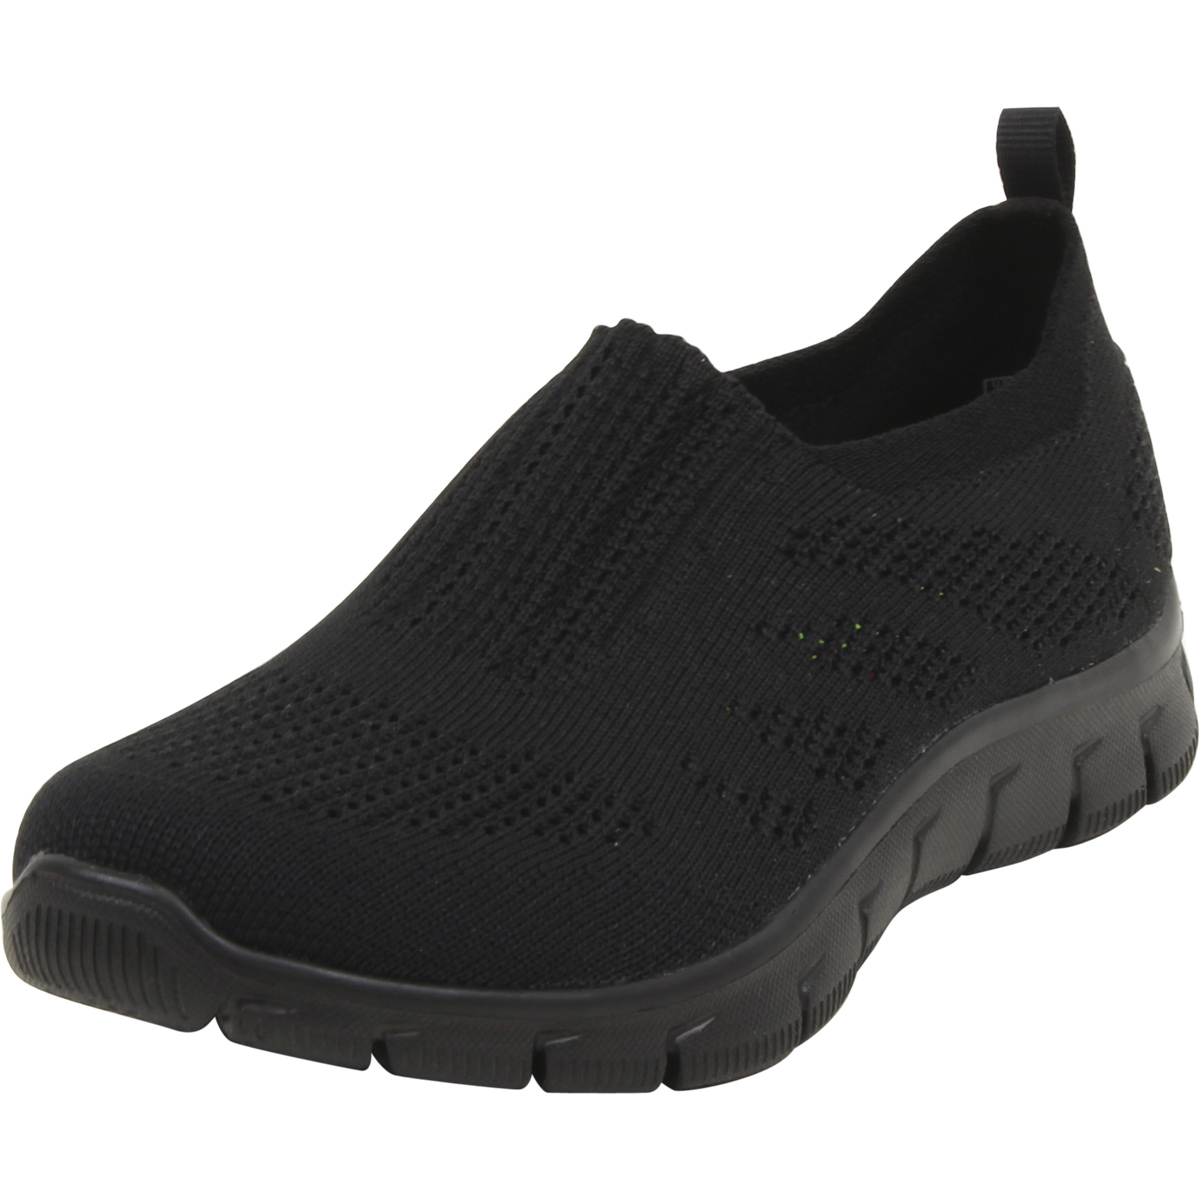 2396431c5c92 Skechers - Skechers Empire - Inside Look Black Black Memory Foam Sneakers  Shoes - Walmart.com